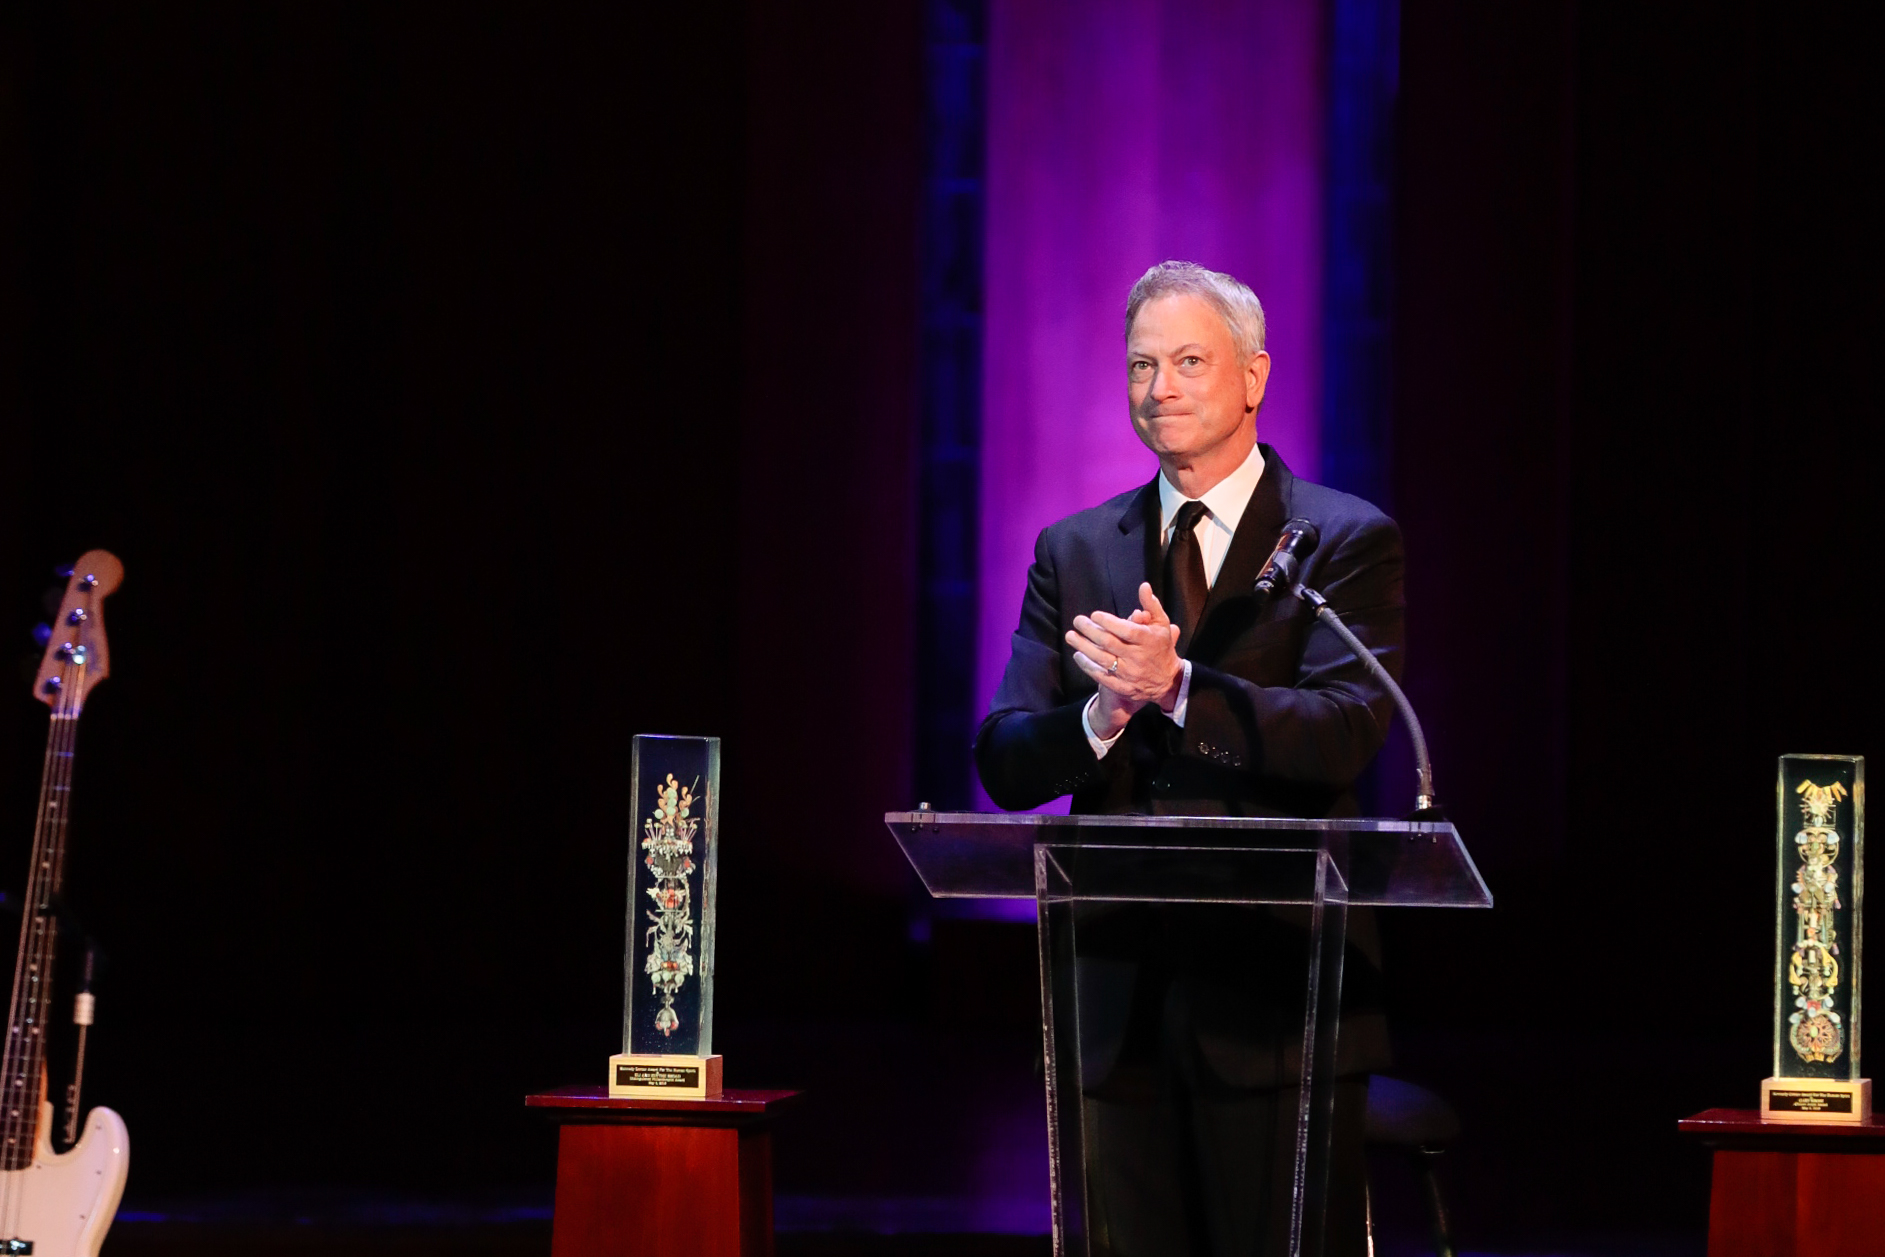 "Actor Gary Sinise was honored with a Human Spirit Award as a citizen artist for his work honoring all of our nation's servicemembers and defenders. . ""When you travel the world like I have and stand in places that don't even really know what freedom is, you value your own freedom even more."" (Image: Yassine El Mansouri for the Kennedy Center)"